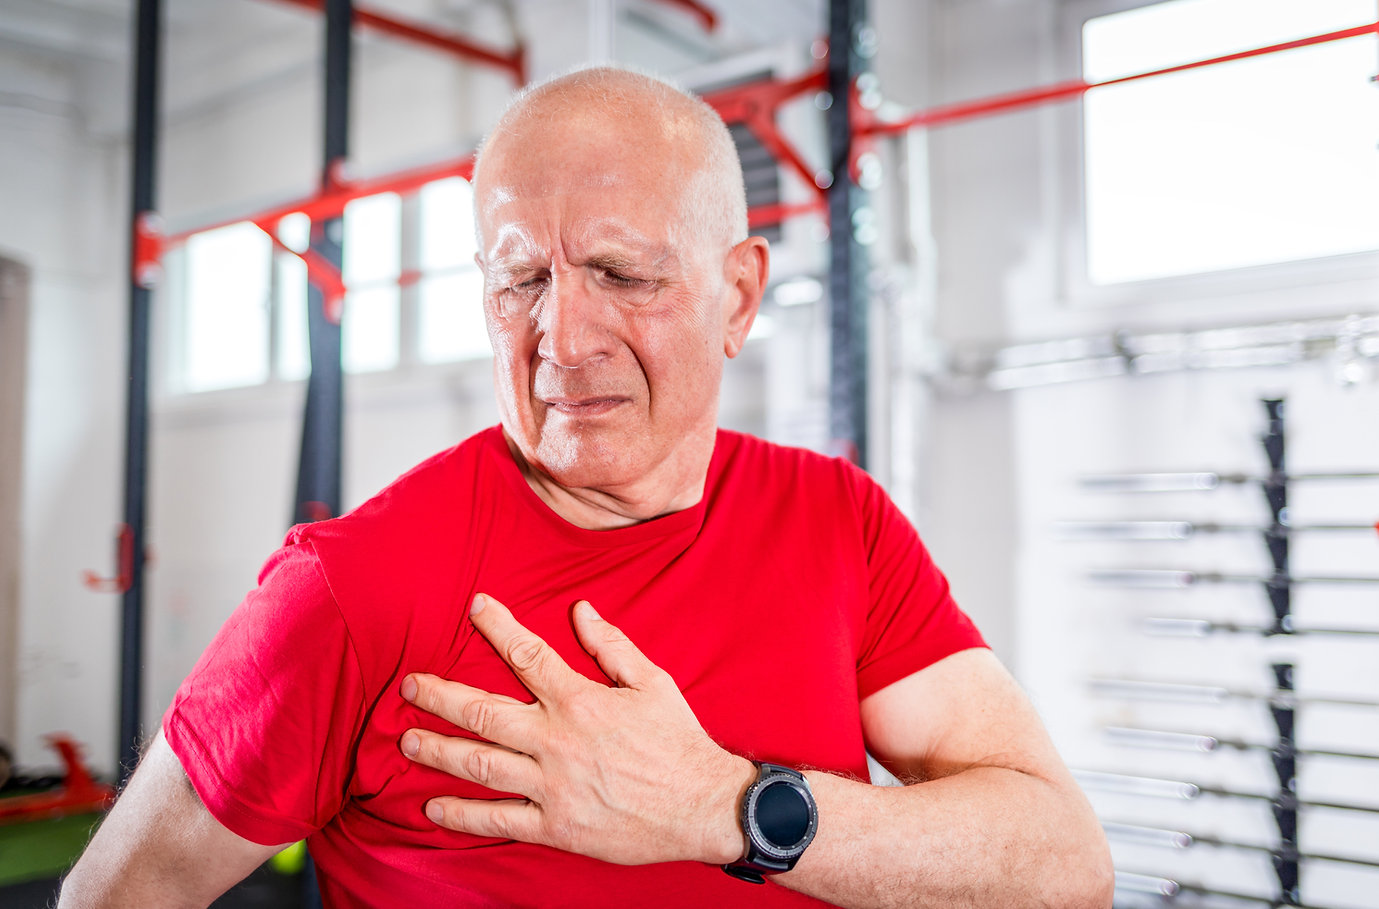 senior-man-at-the-gym-suffering-from-pai